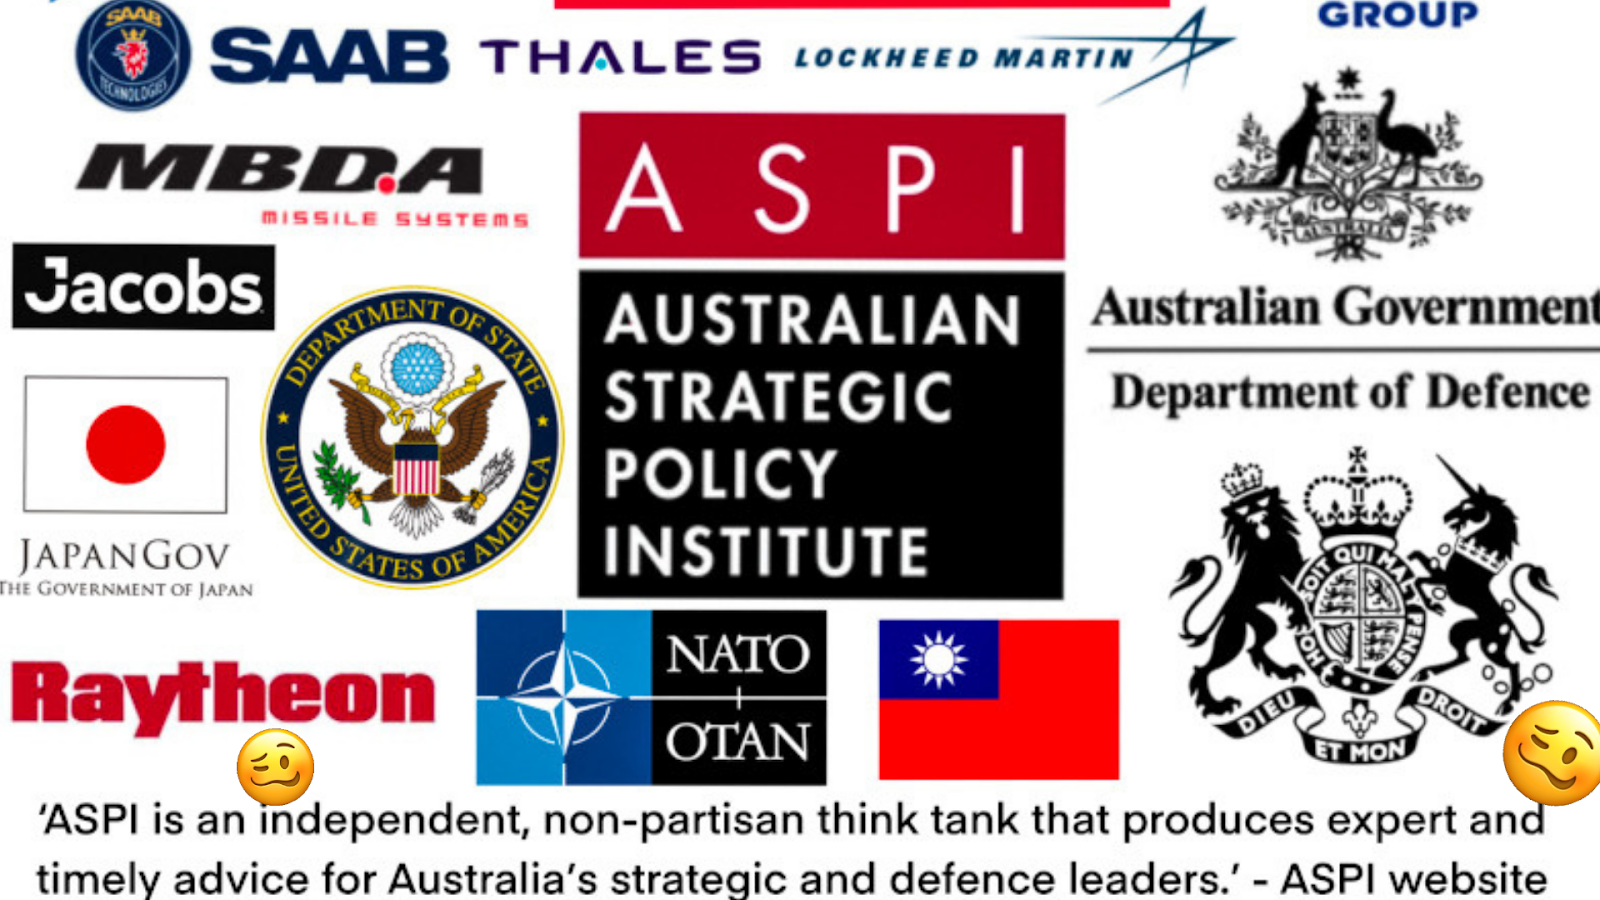 Just some of the donors and funders of ASPI